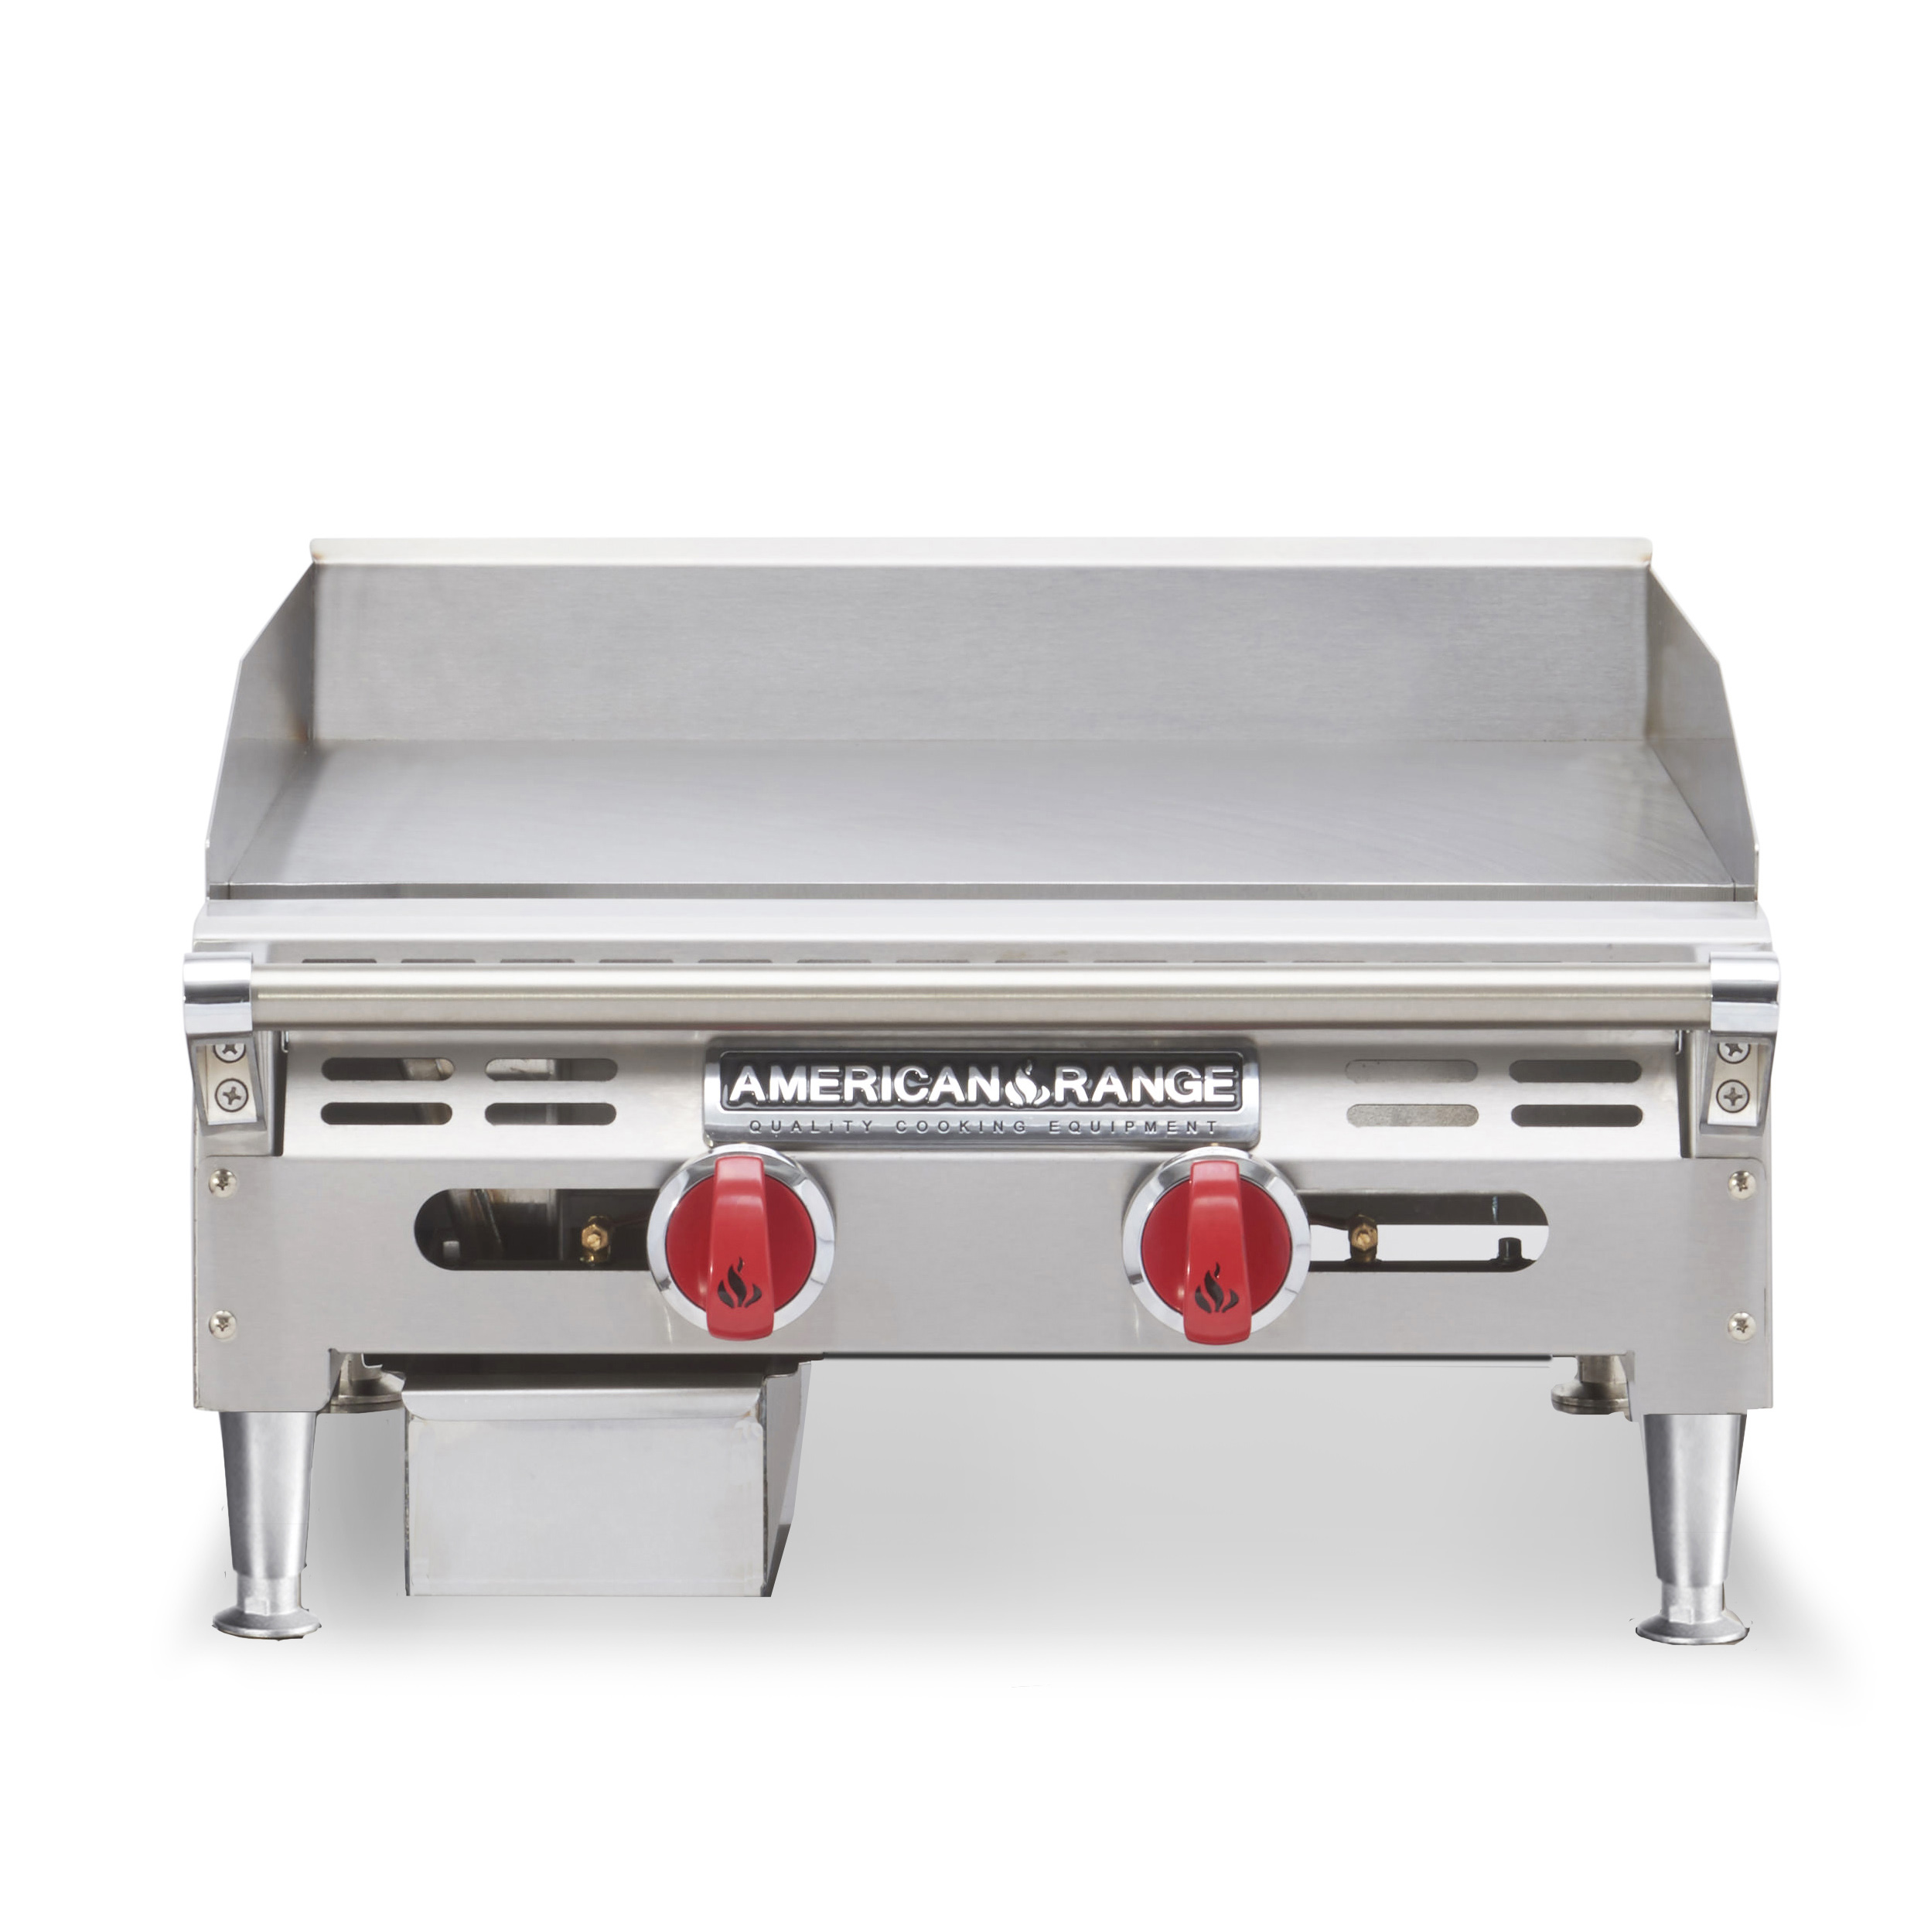 American Range AEMG-48 griddle, gas, countertop